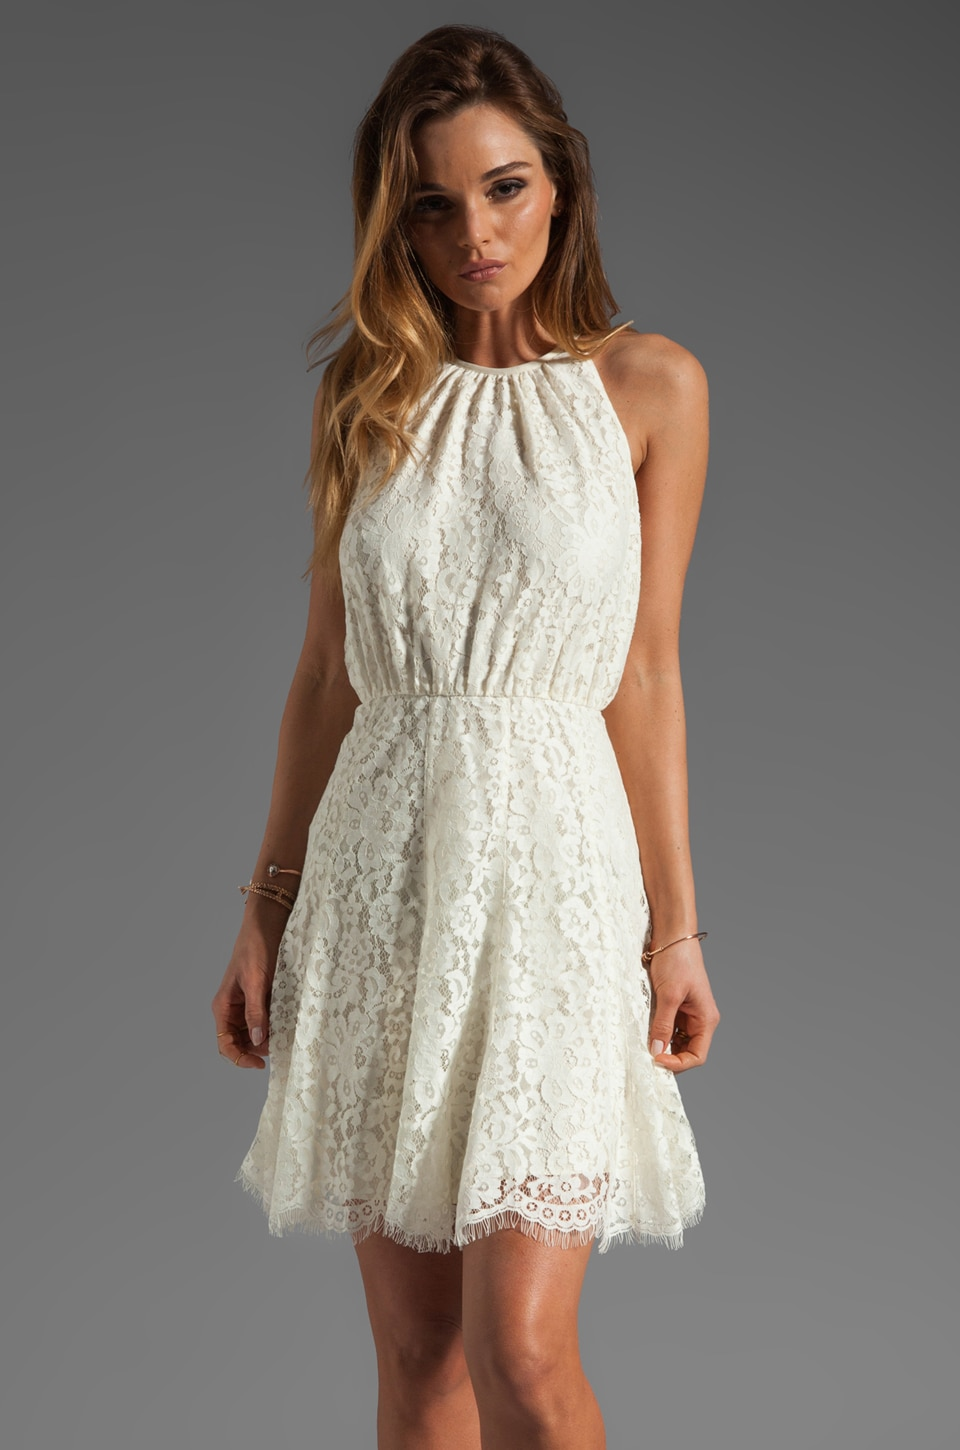 Juicy Couture Scallop Lace Dress in Angel